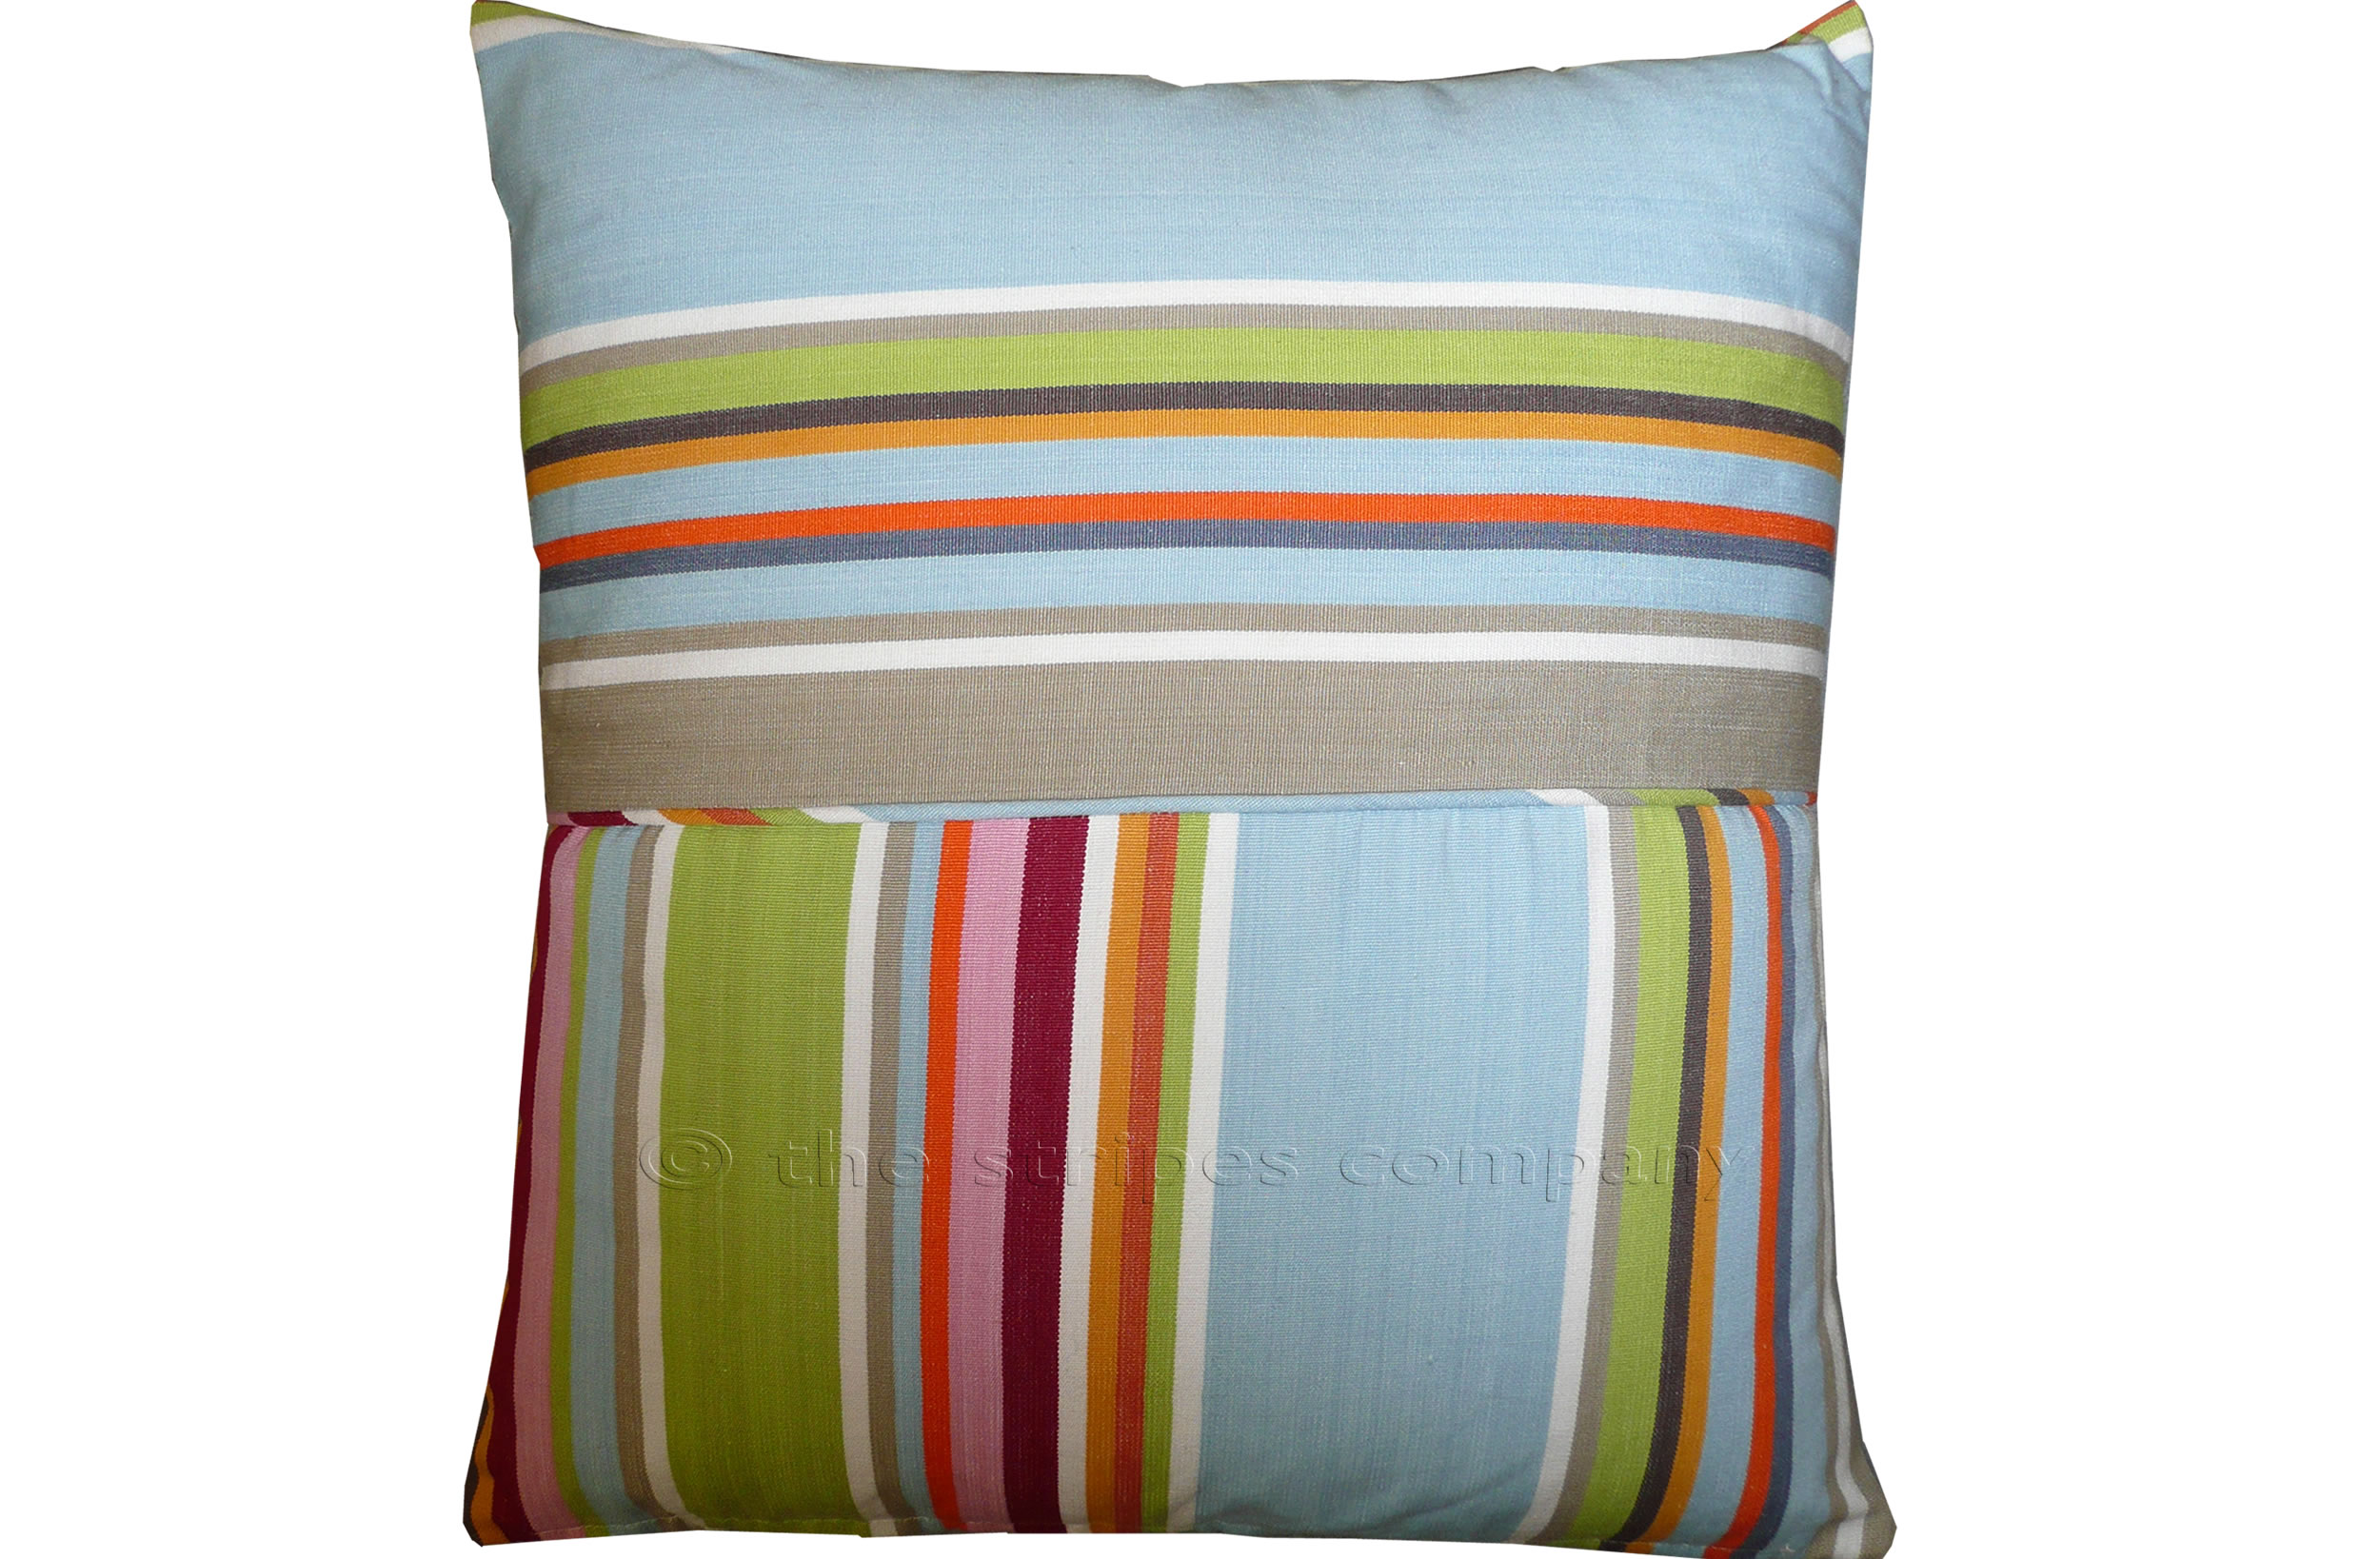 Duck Egg Blue Striped Cushions | Square Piped Cushions